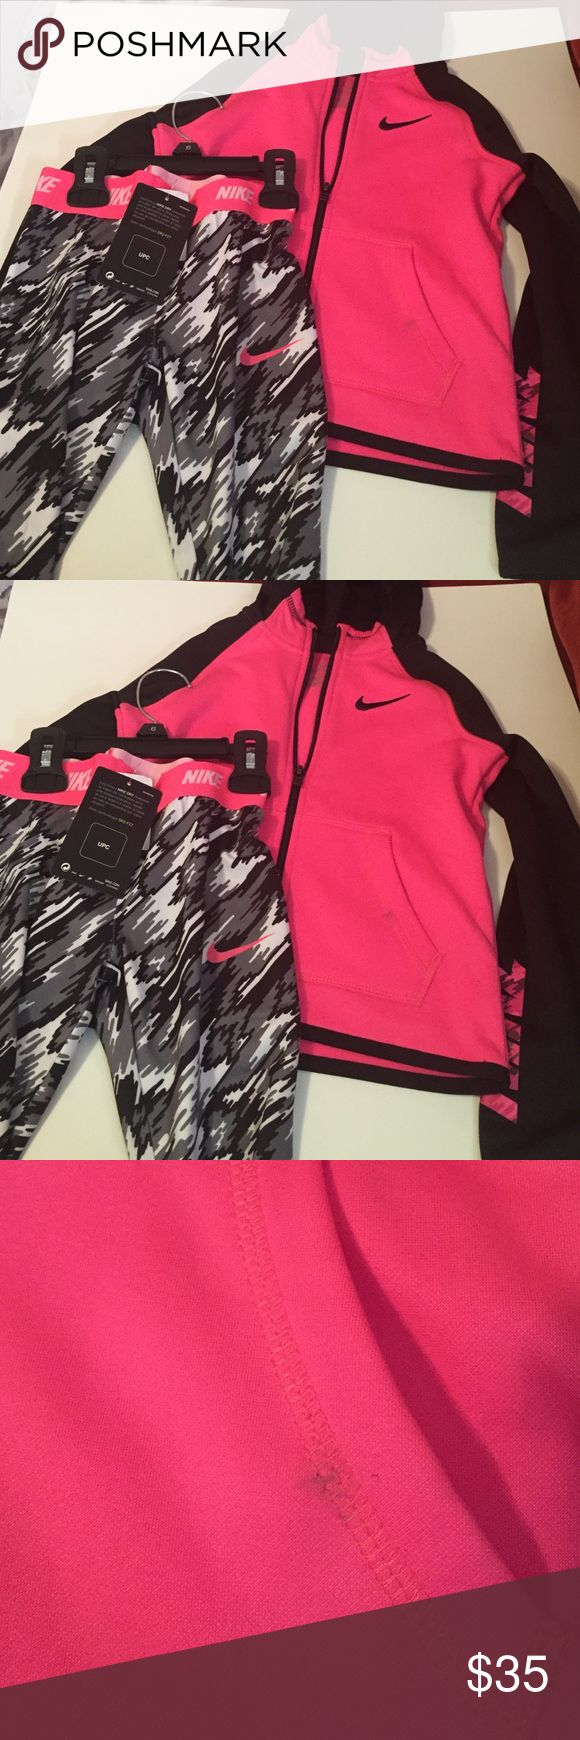 Girls Nike jogging suit Girls 2 piece Nike jogging suit new with tags size 6 was for granddaughter but too small there is a small spot on suit by pocket other wise brand new pink gray white Nike Matching Sets